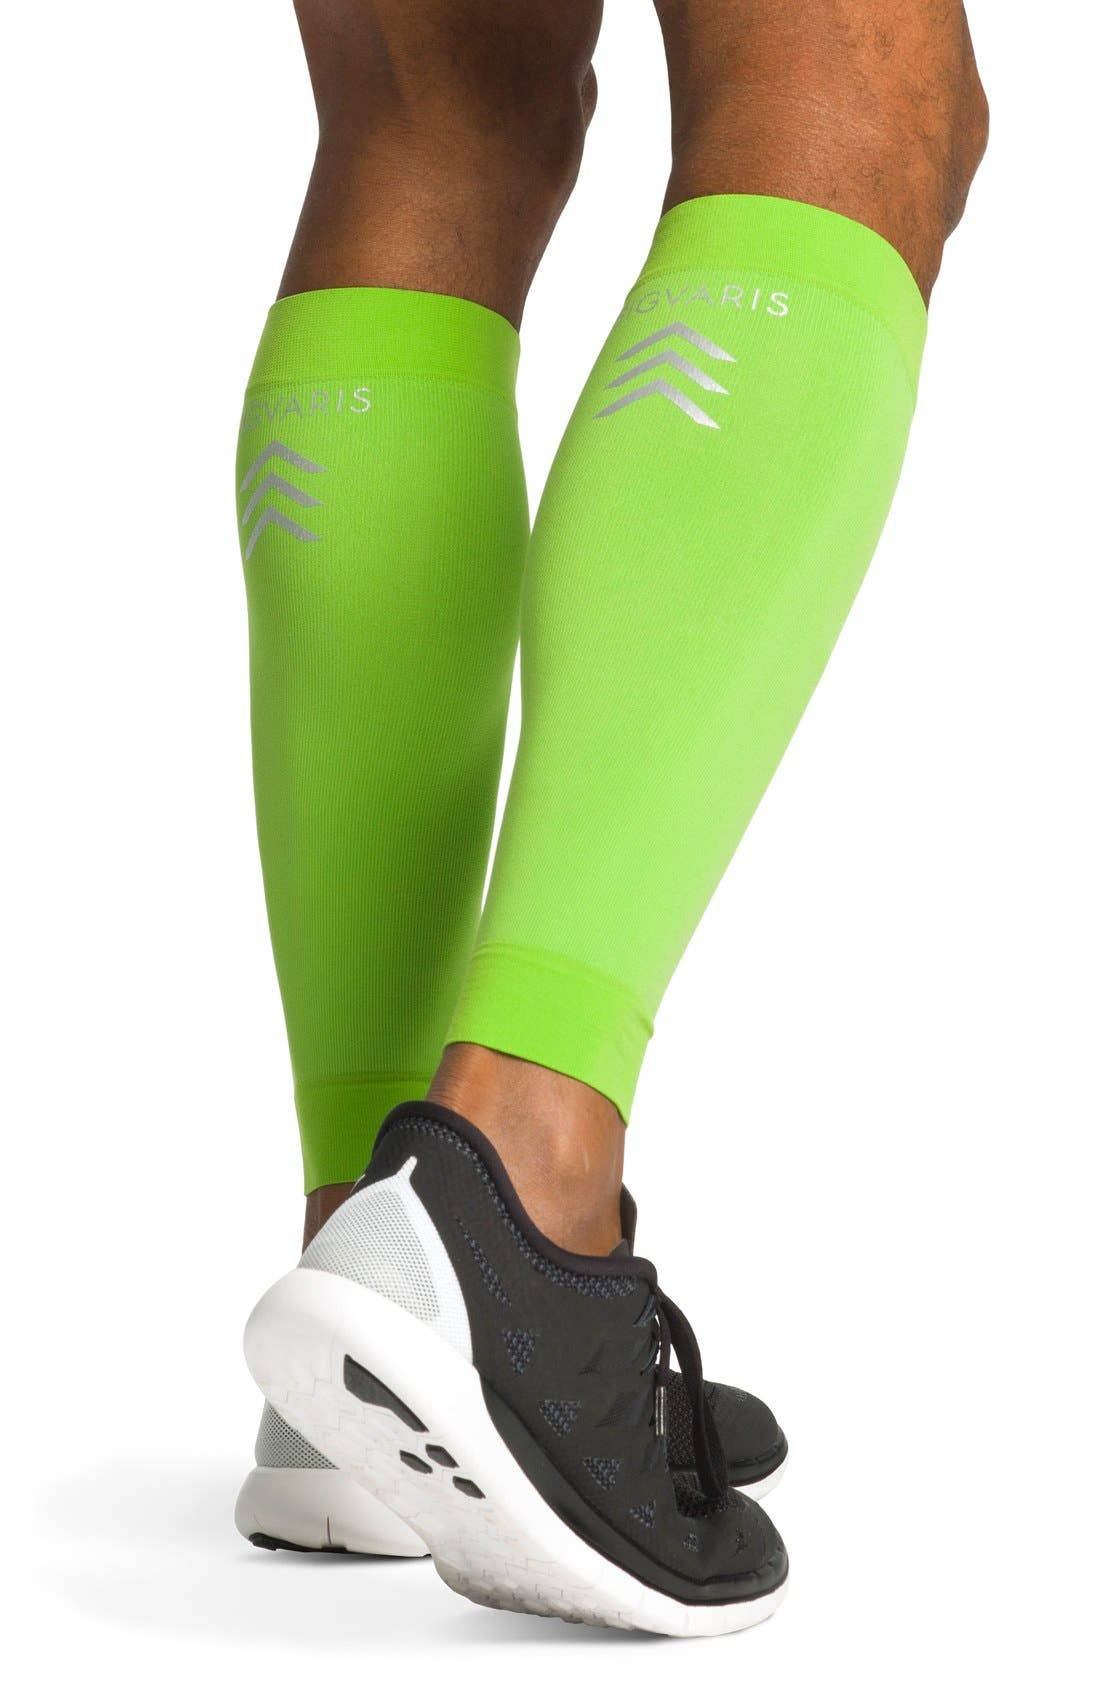 'Sports' Graduated Compression Performance Calf Sleeve,                             Alternate thumbnail 2, color,                             Lime